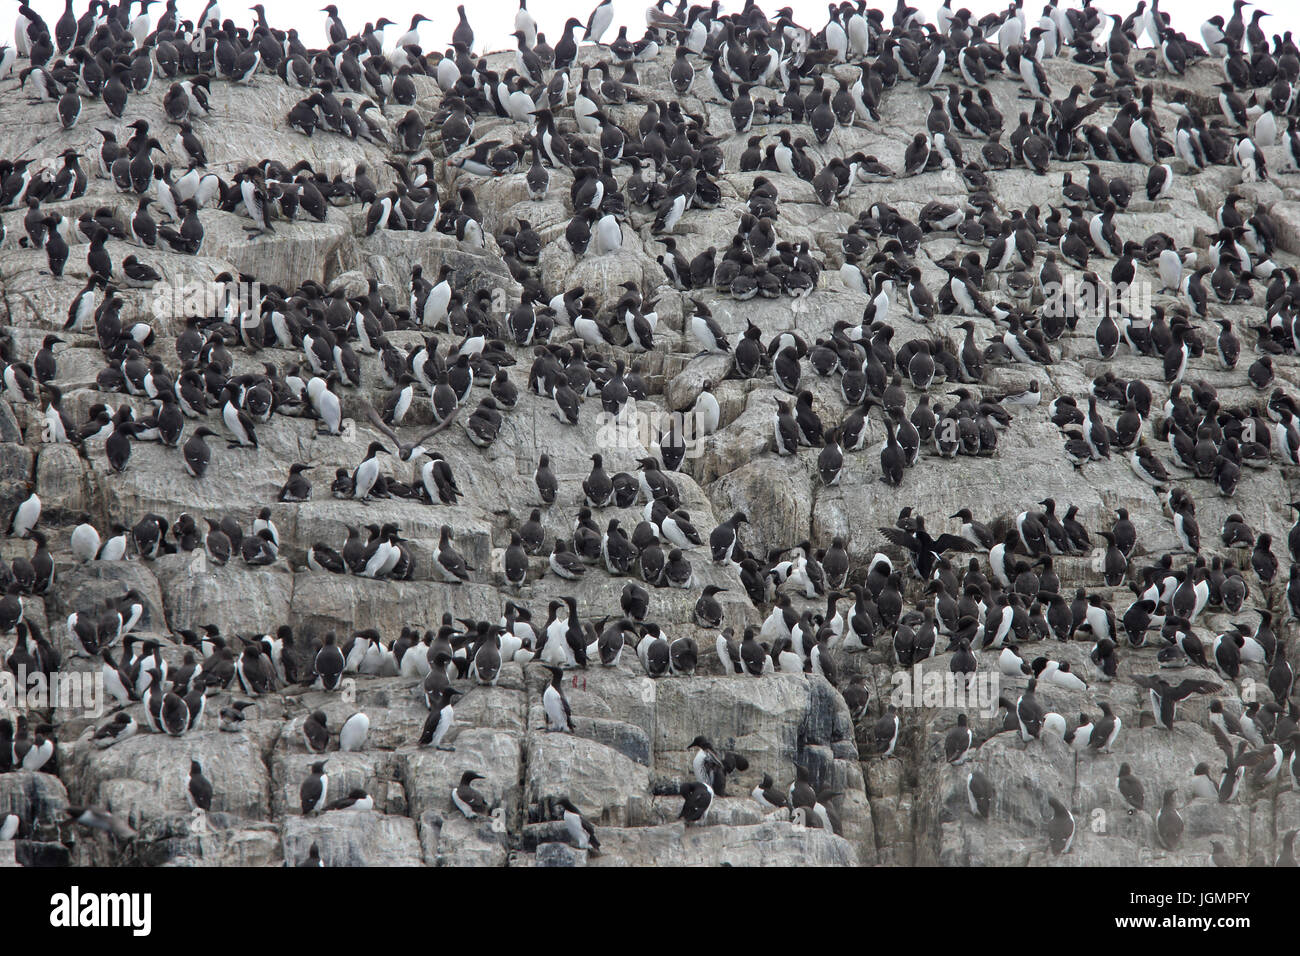 A colony of Guillemots (Common Murres, Uria aalge) on nesting cliffs, Farne Islands, Northumbria, England, UK. Stock Photo